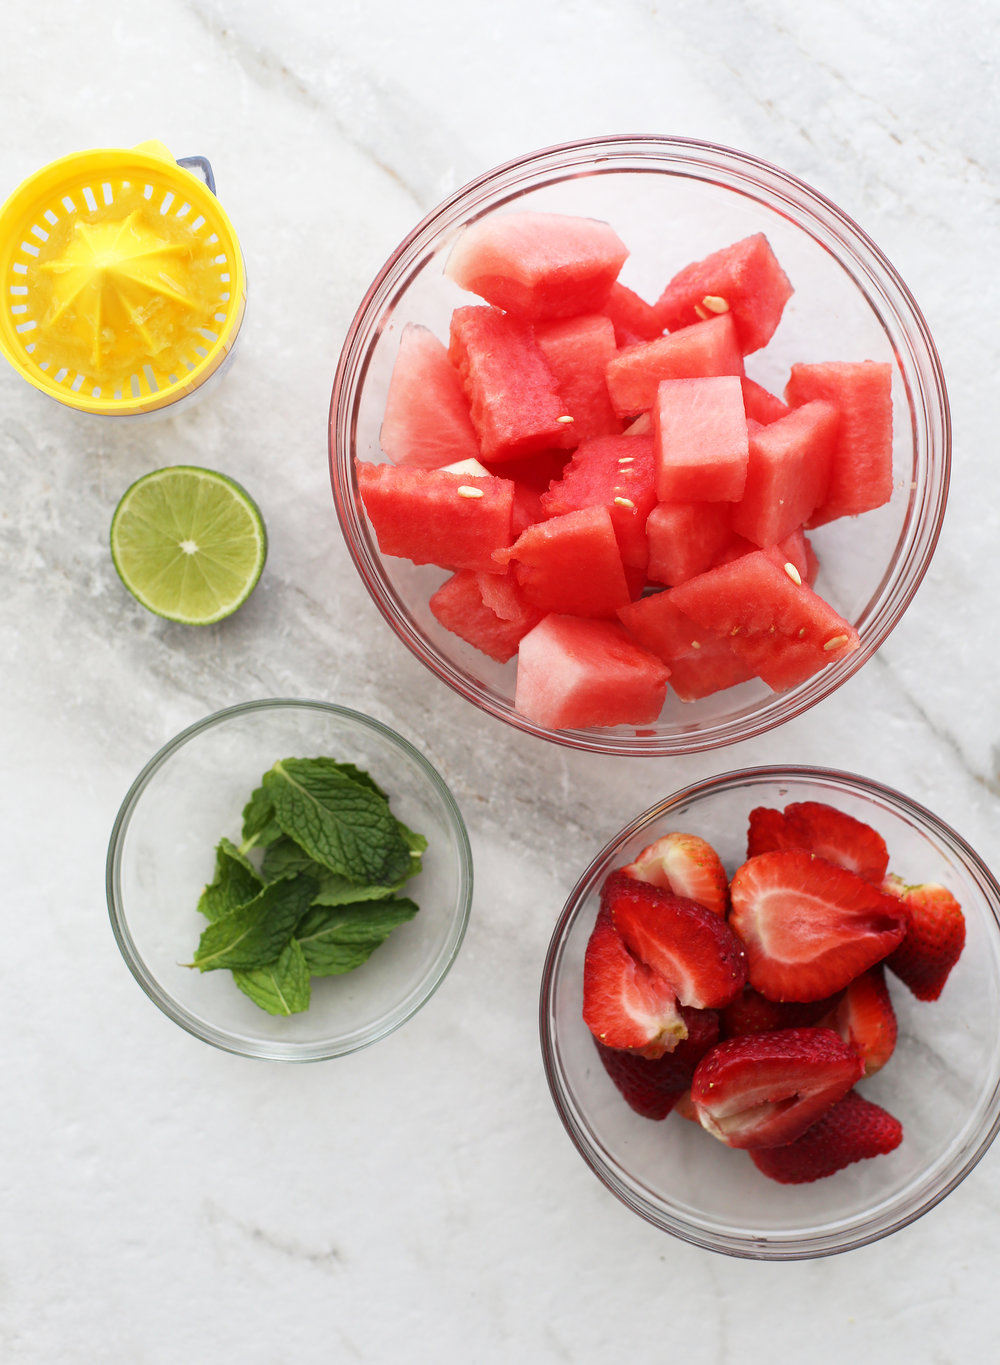 Bowls of strawberries, watermelon, fresh mint, and half a lime.